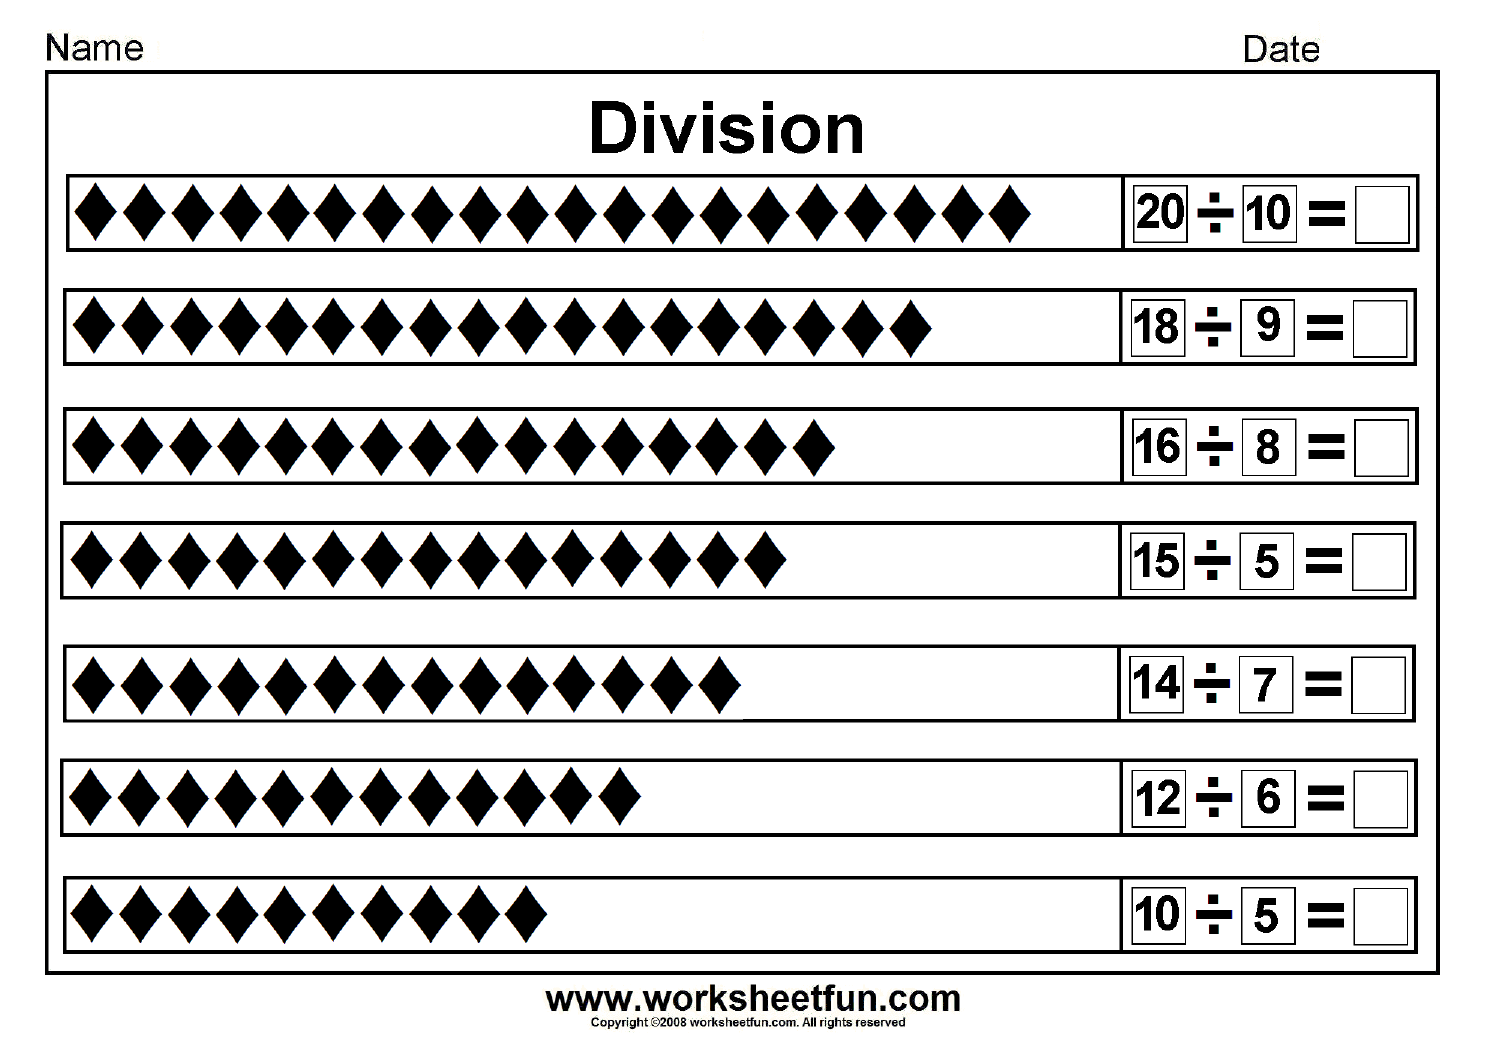 Division By Grouping Worksheet